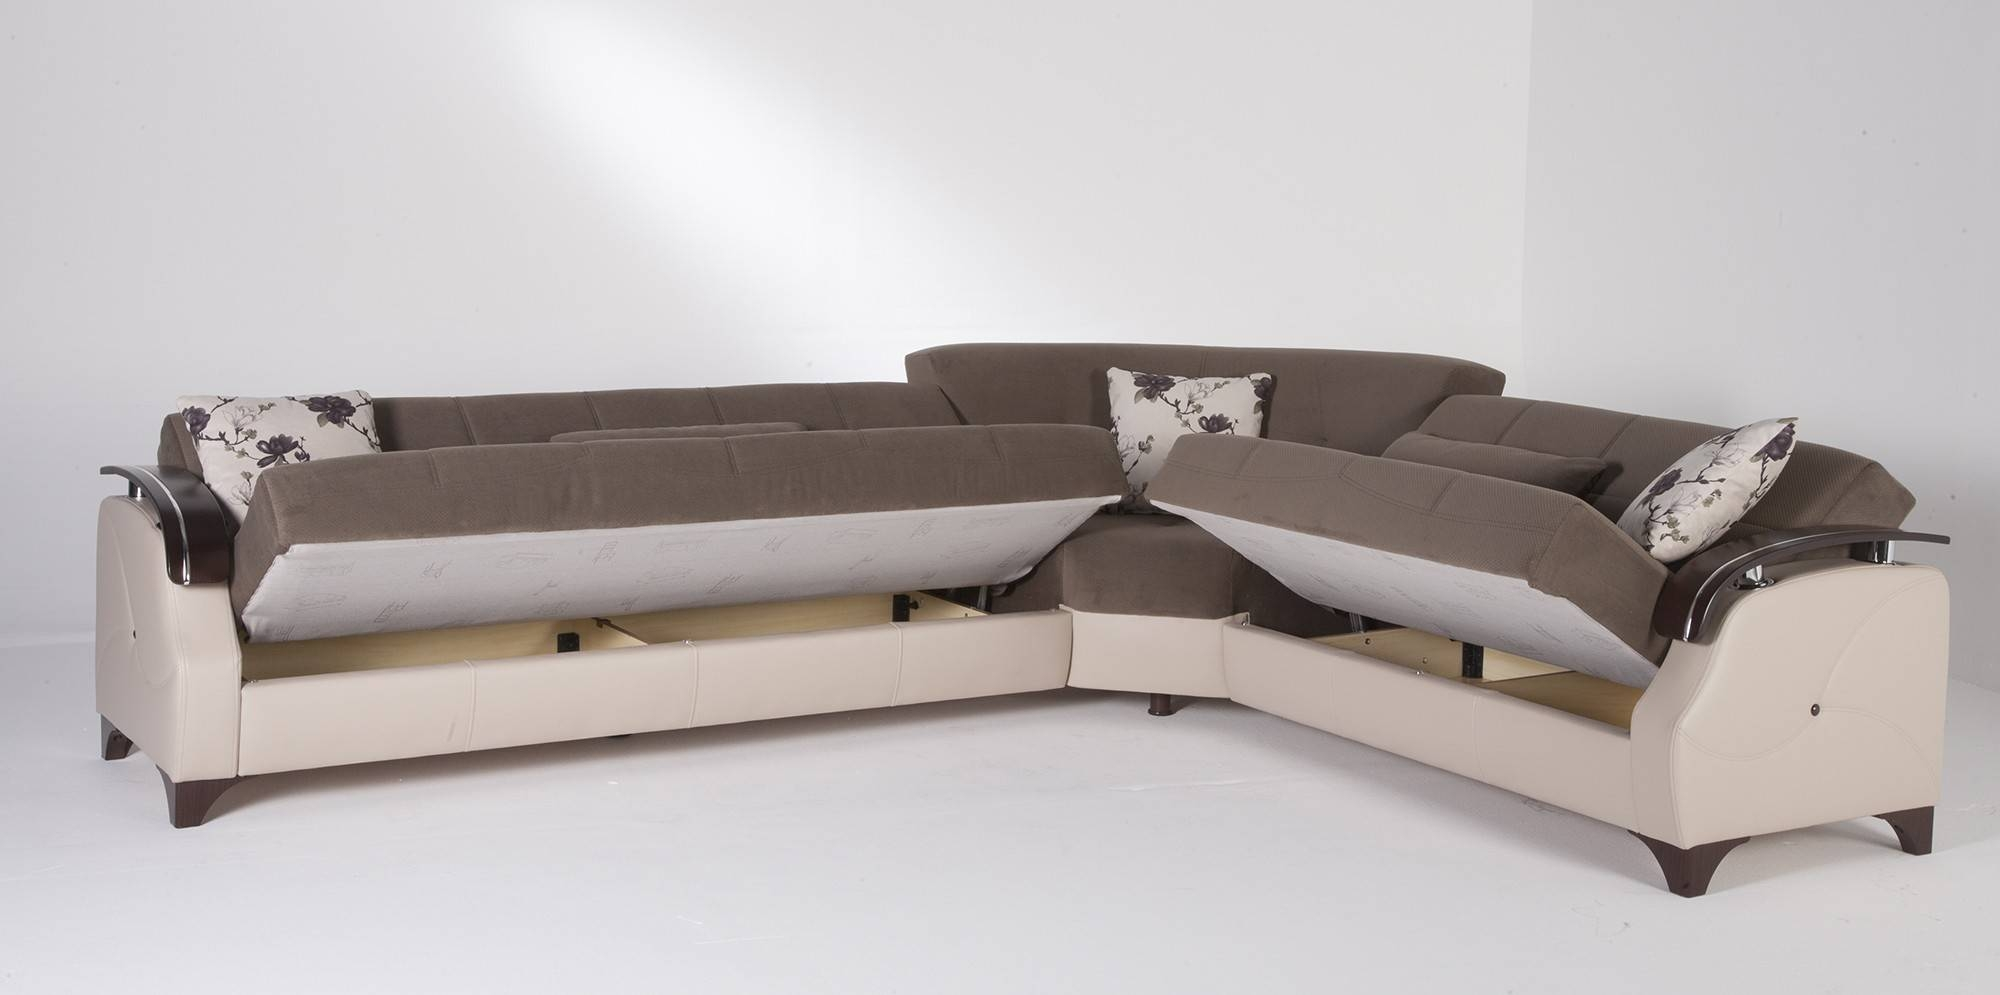 Kobe Sectional Sofa Sleeper – S3Net – Sectional Sofas Sale : S3Net Intended For Sleeper Sectional Sofas (View 9 of 30)